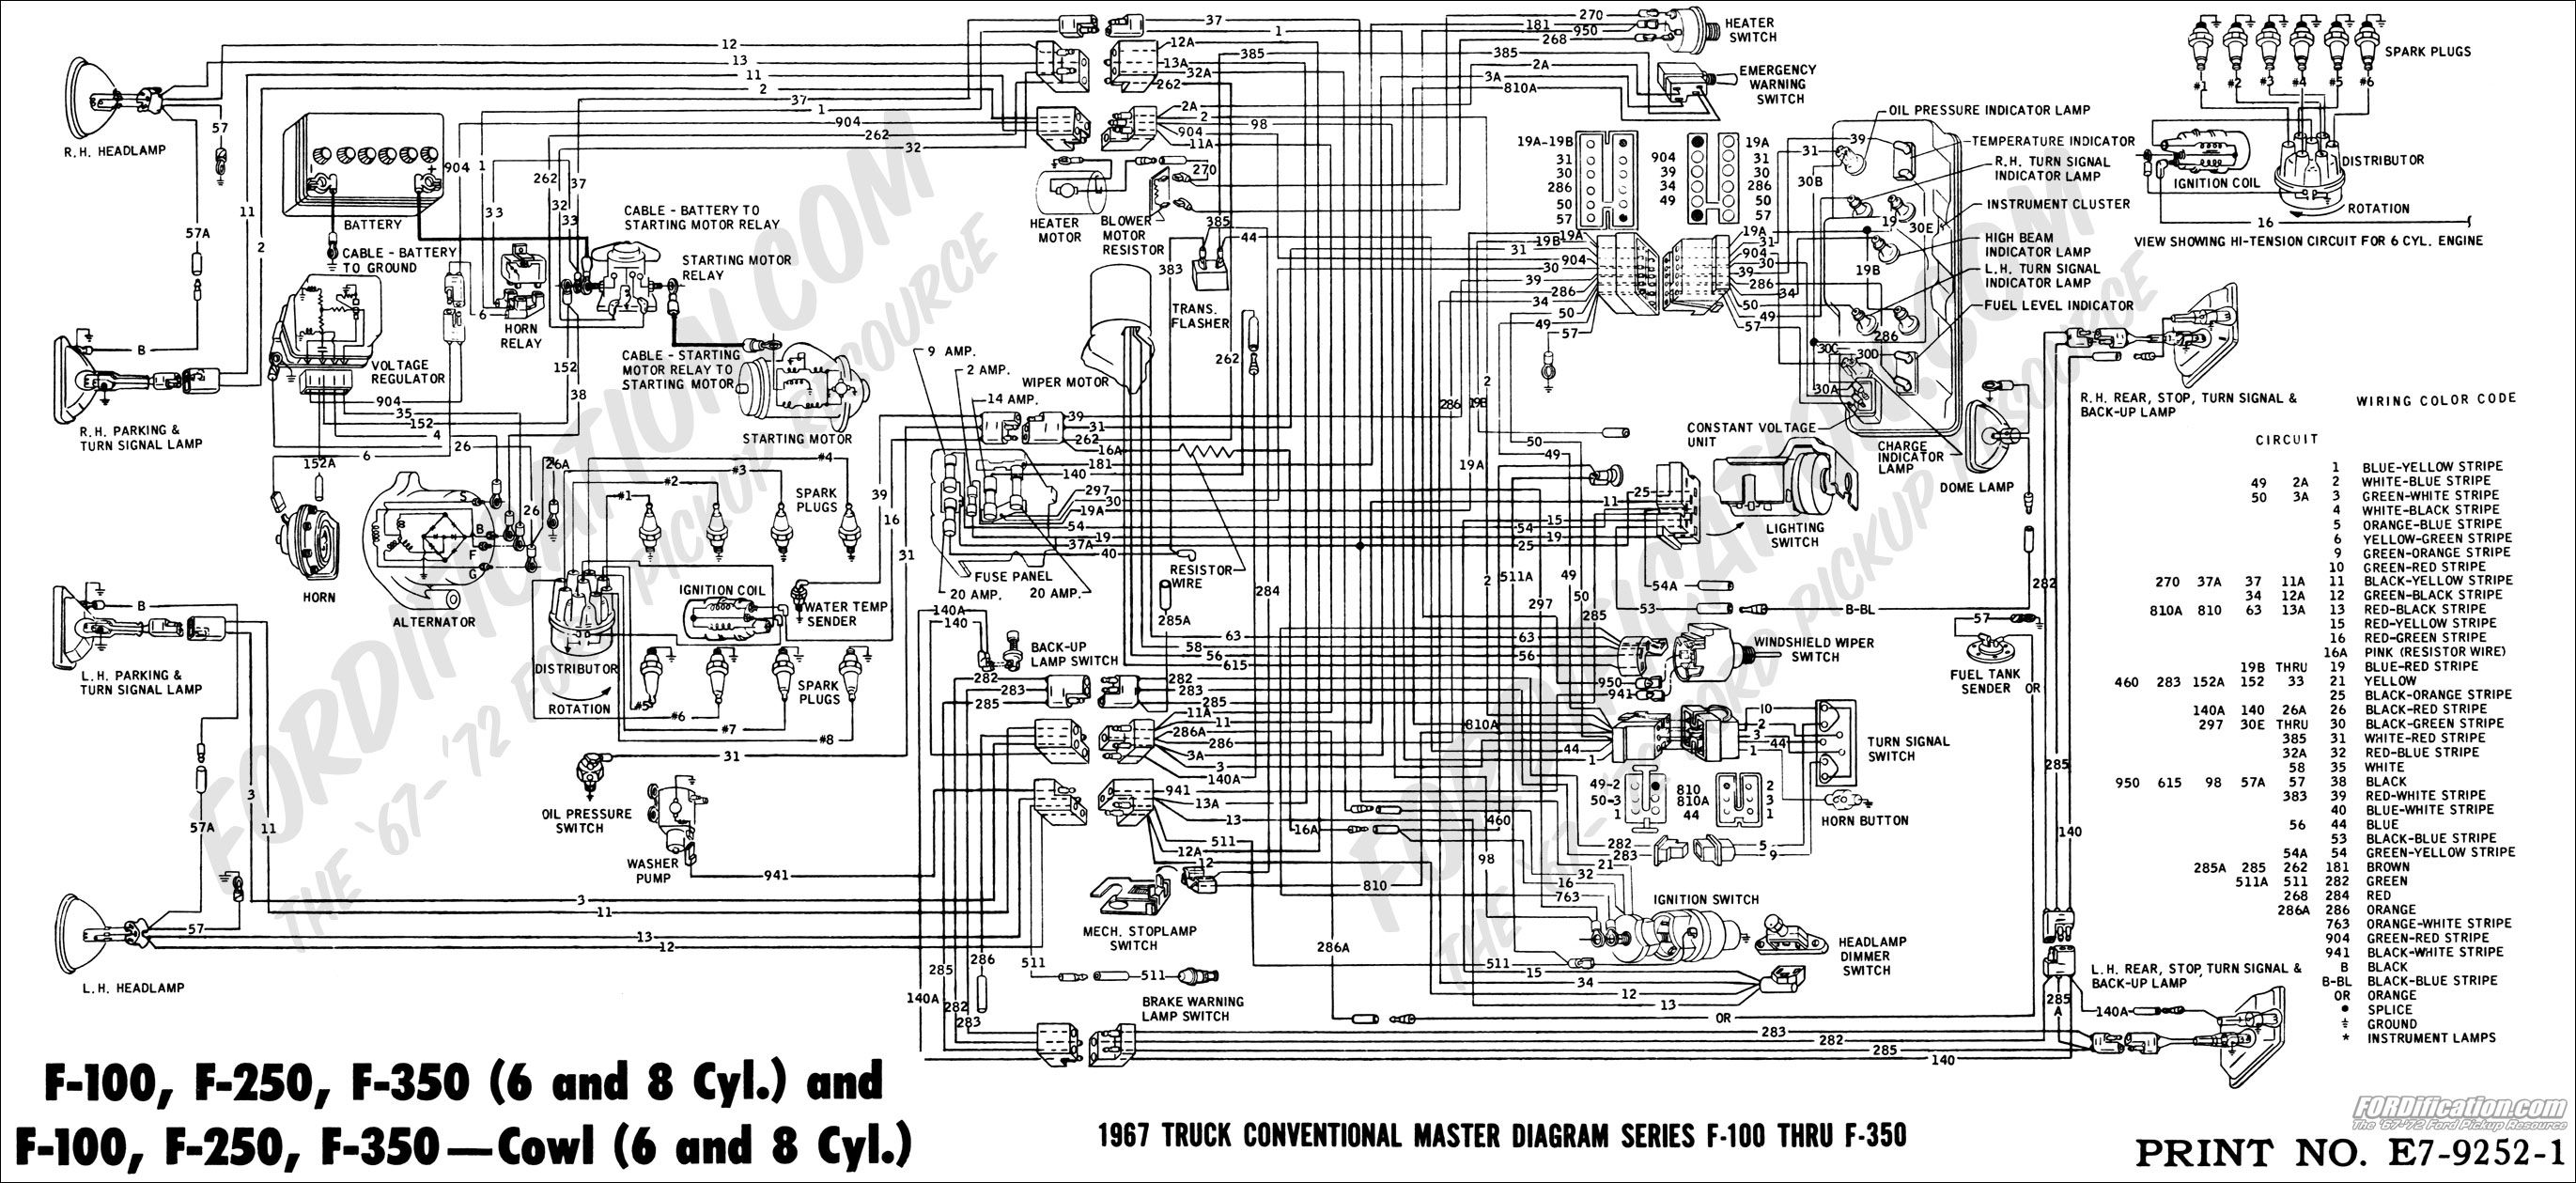 8e608320d8e6c71ff5bbdb2efdd7ada1 ford truck technical drawings and schematics section h wiring Ford E 350 Wiring Diagrams at creativeand.co